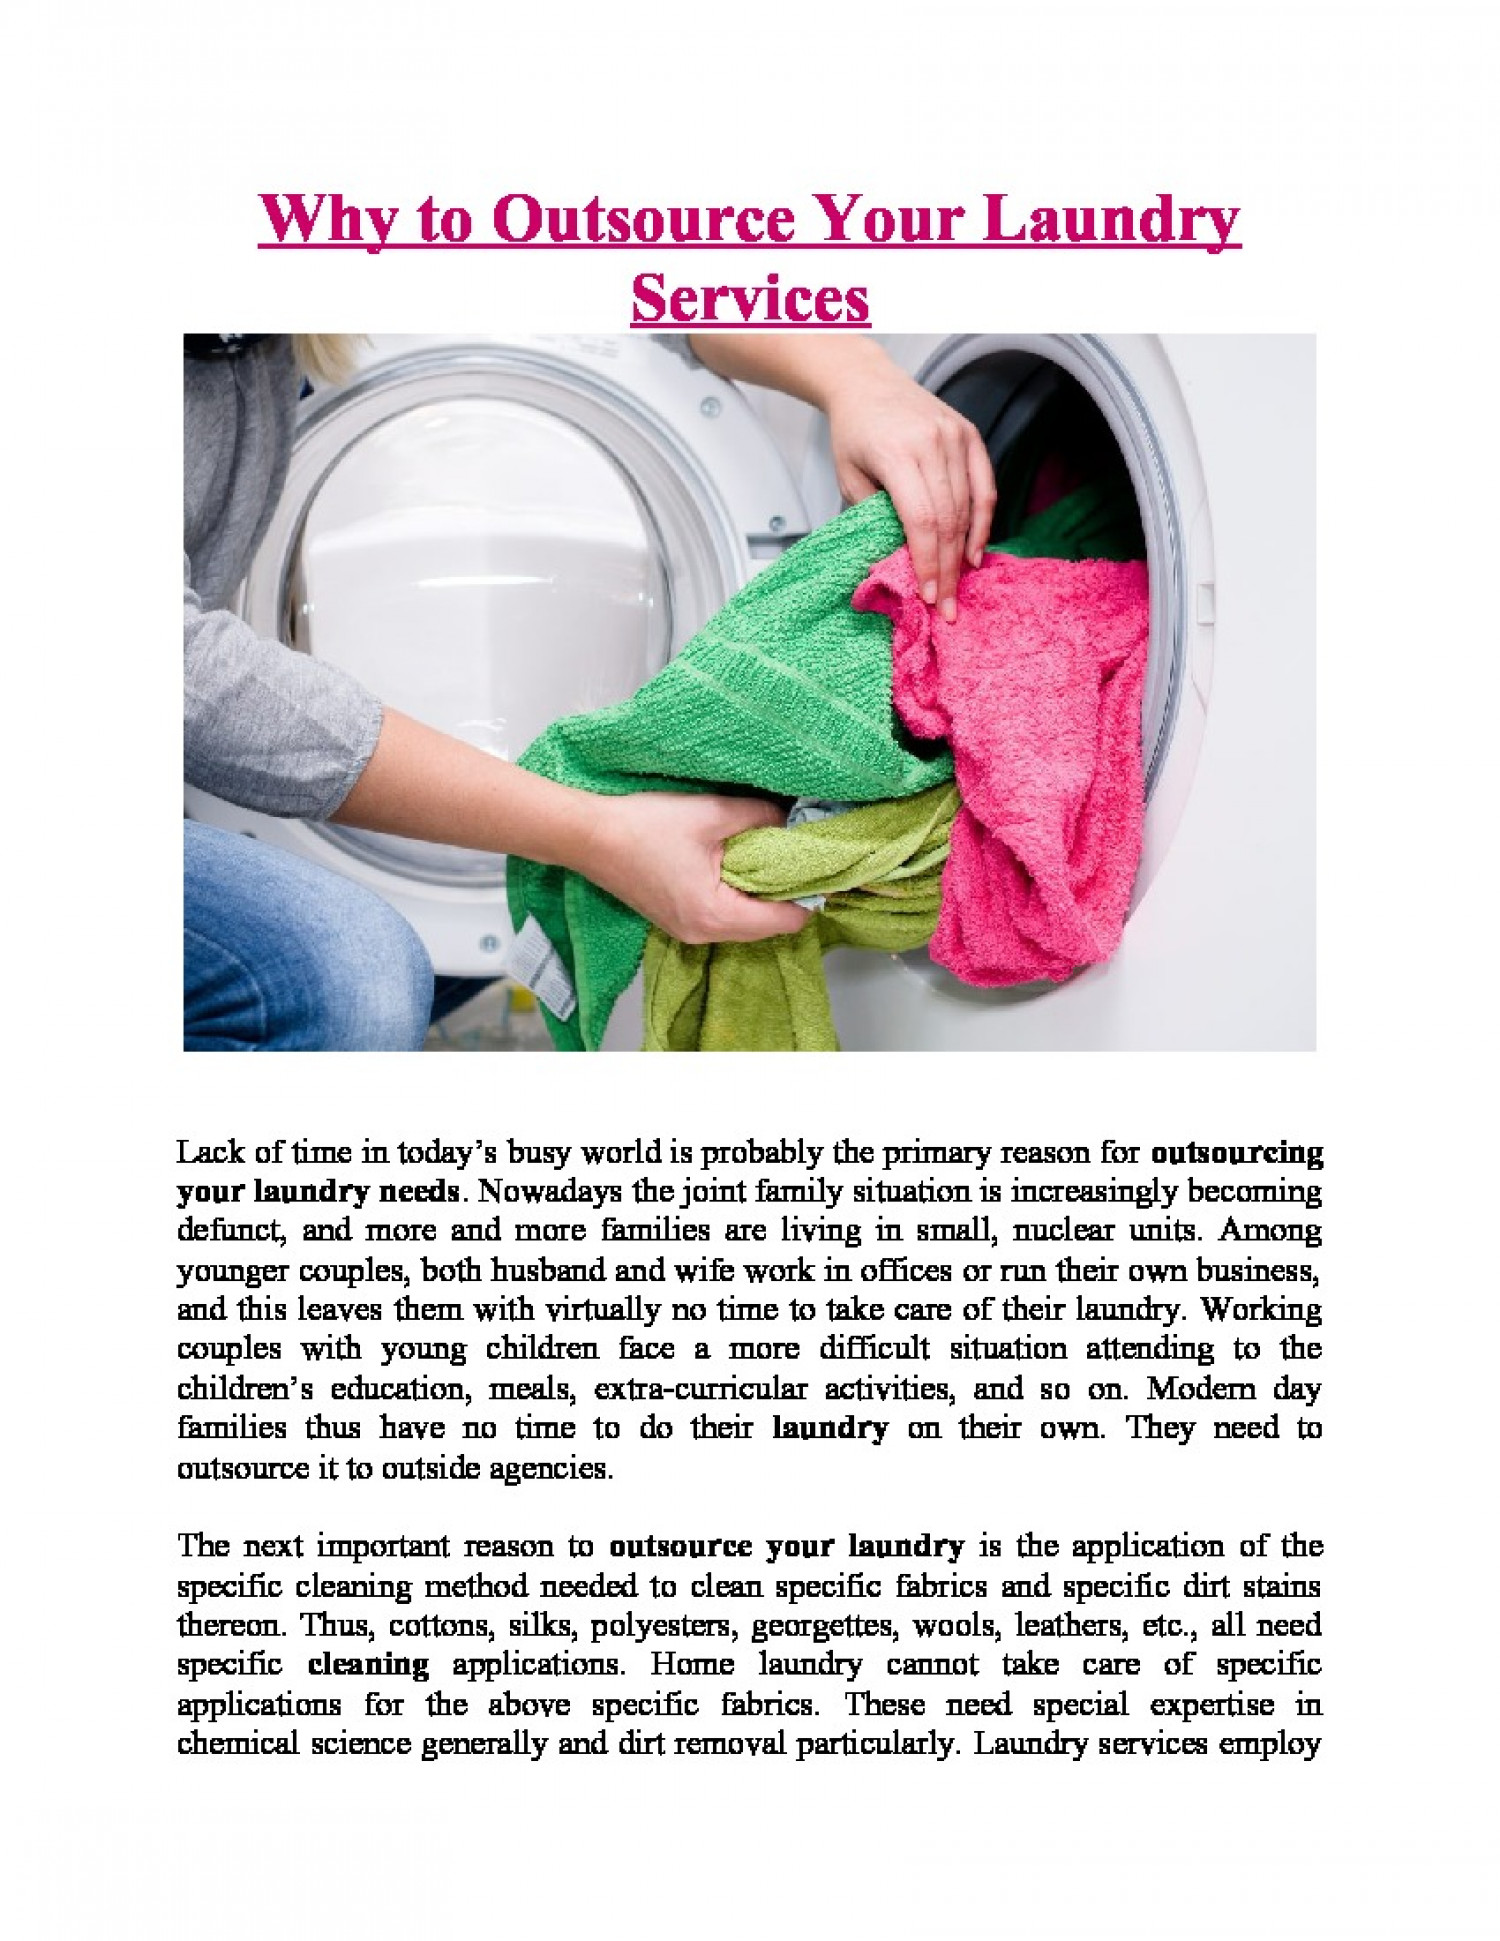 Why to outsource your Laundry Services Infographic